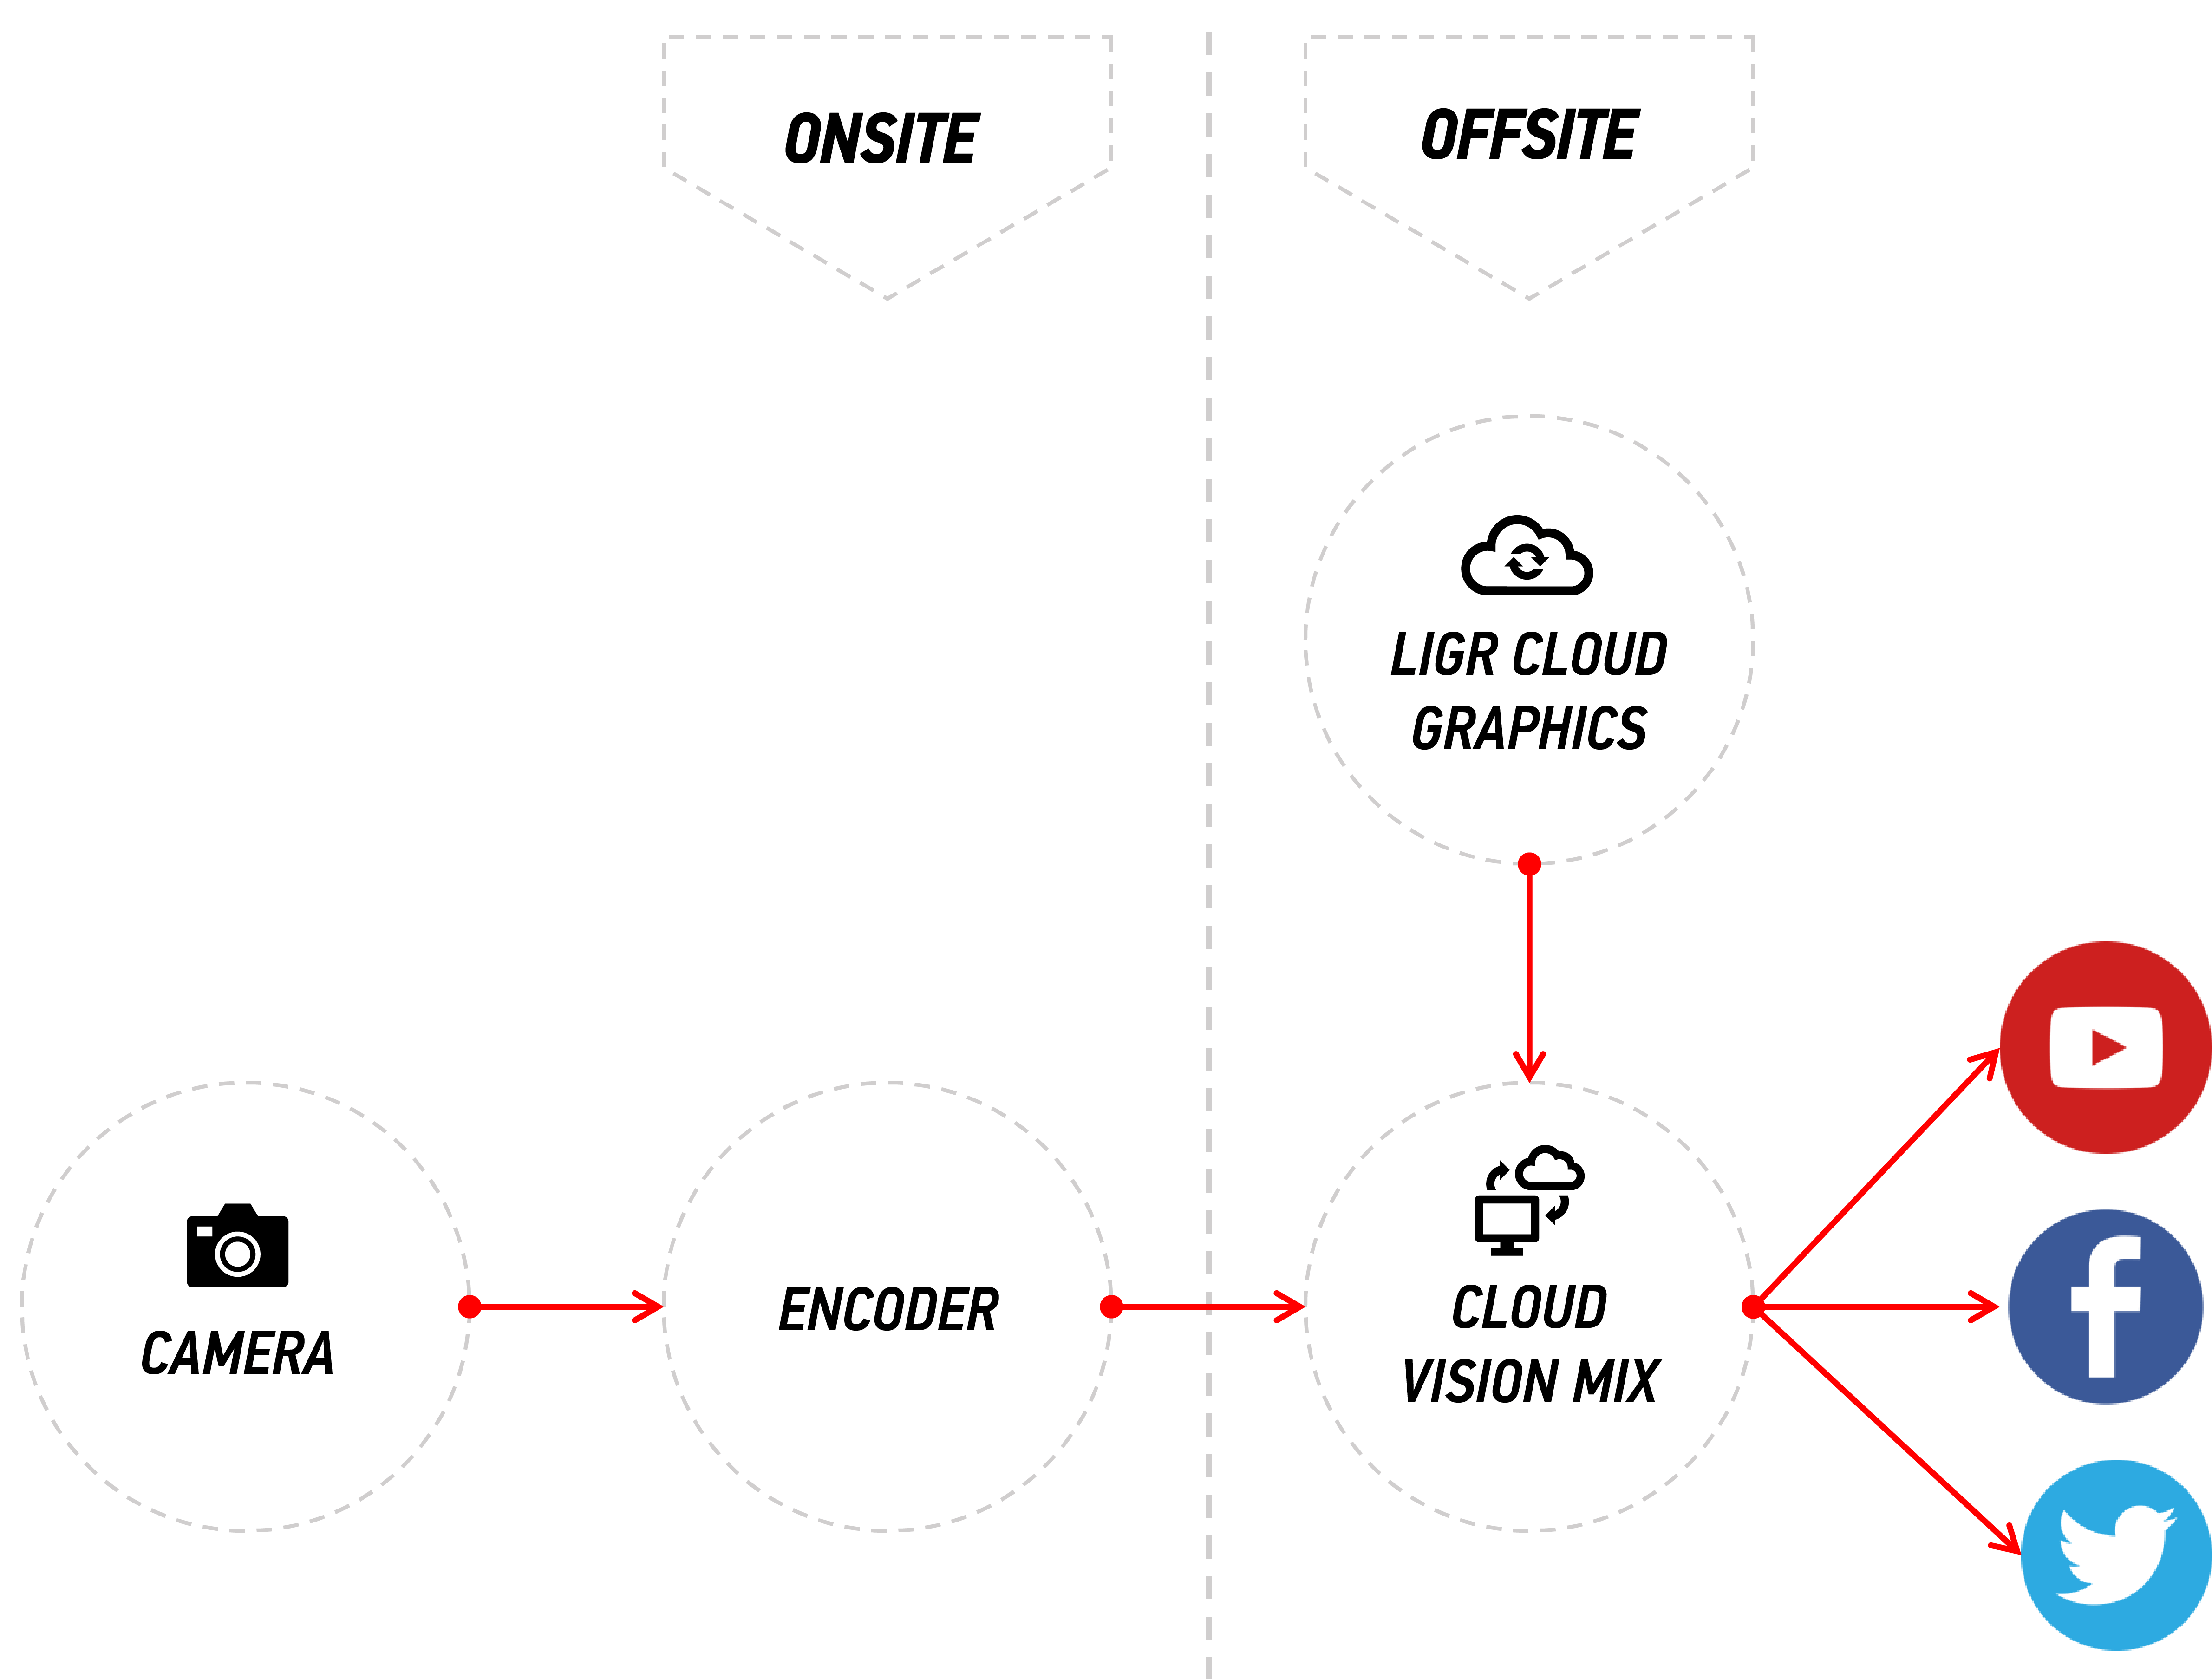 Example of a single camera workflow, using a hardware encoder.